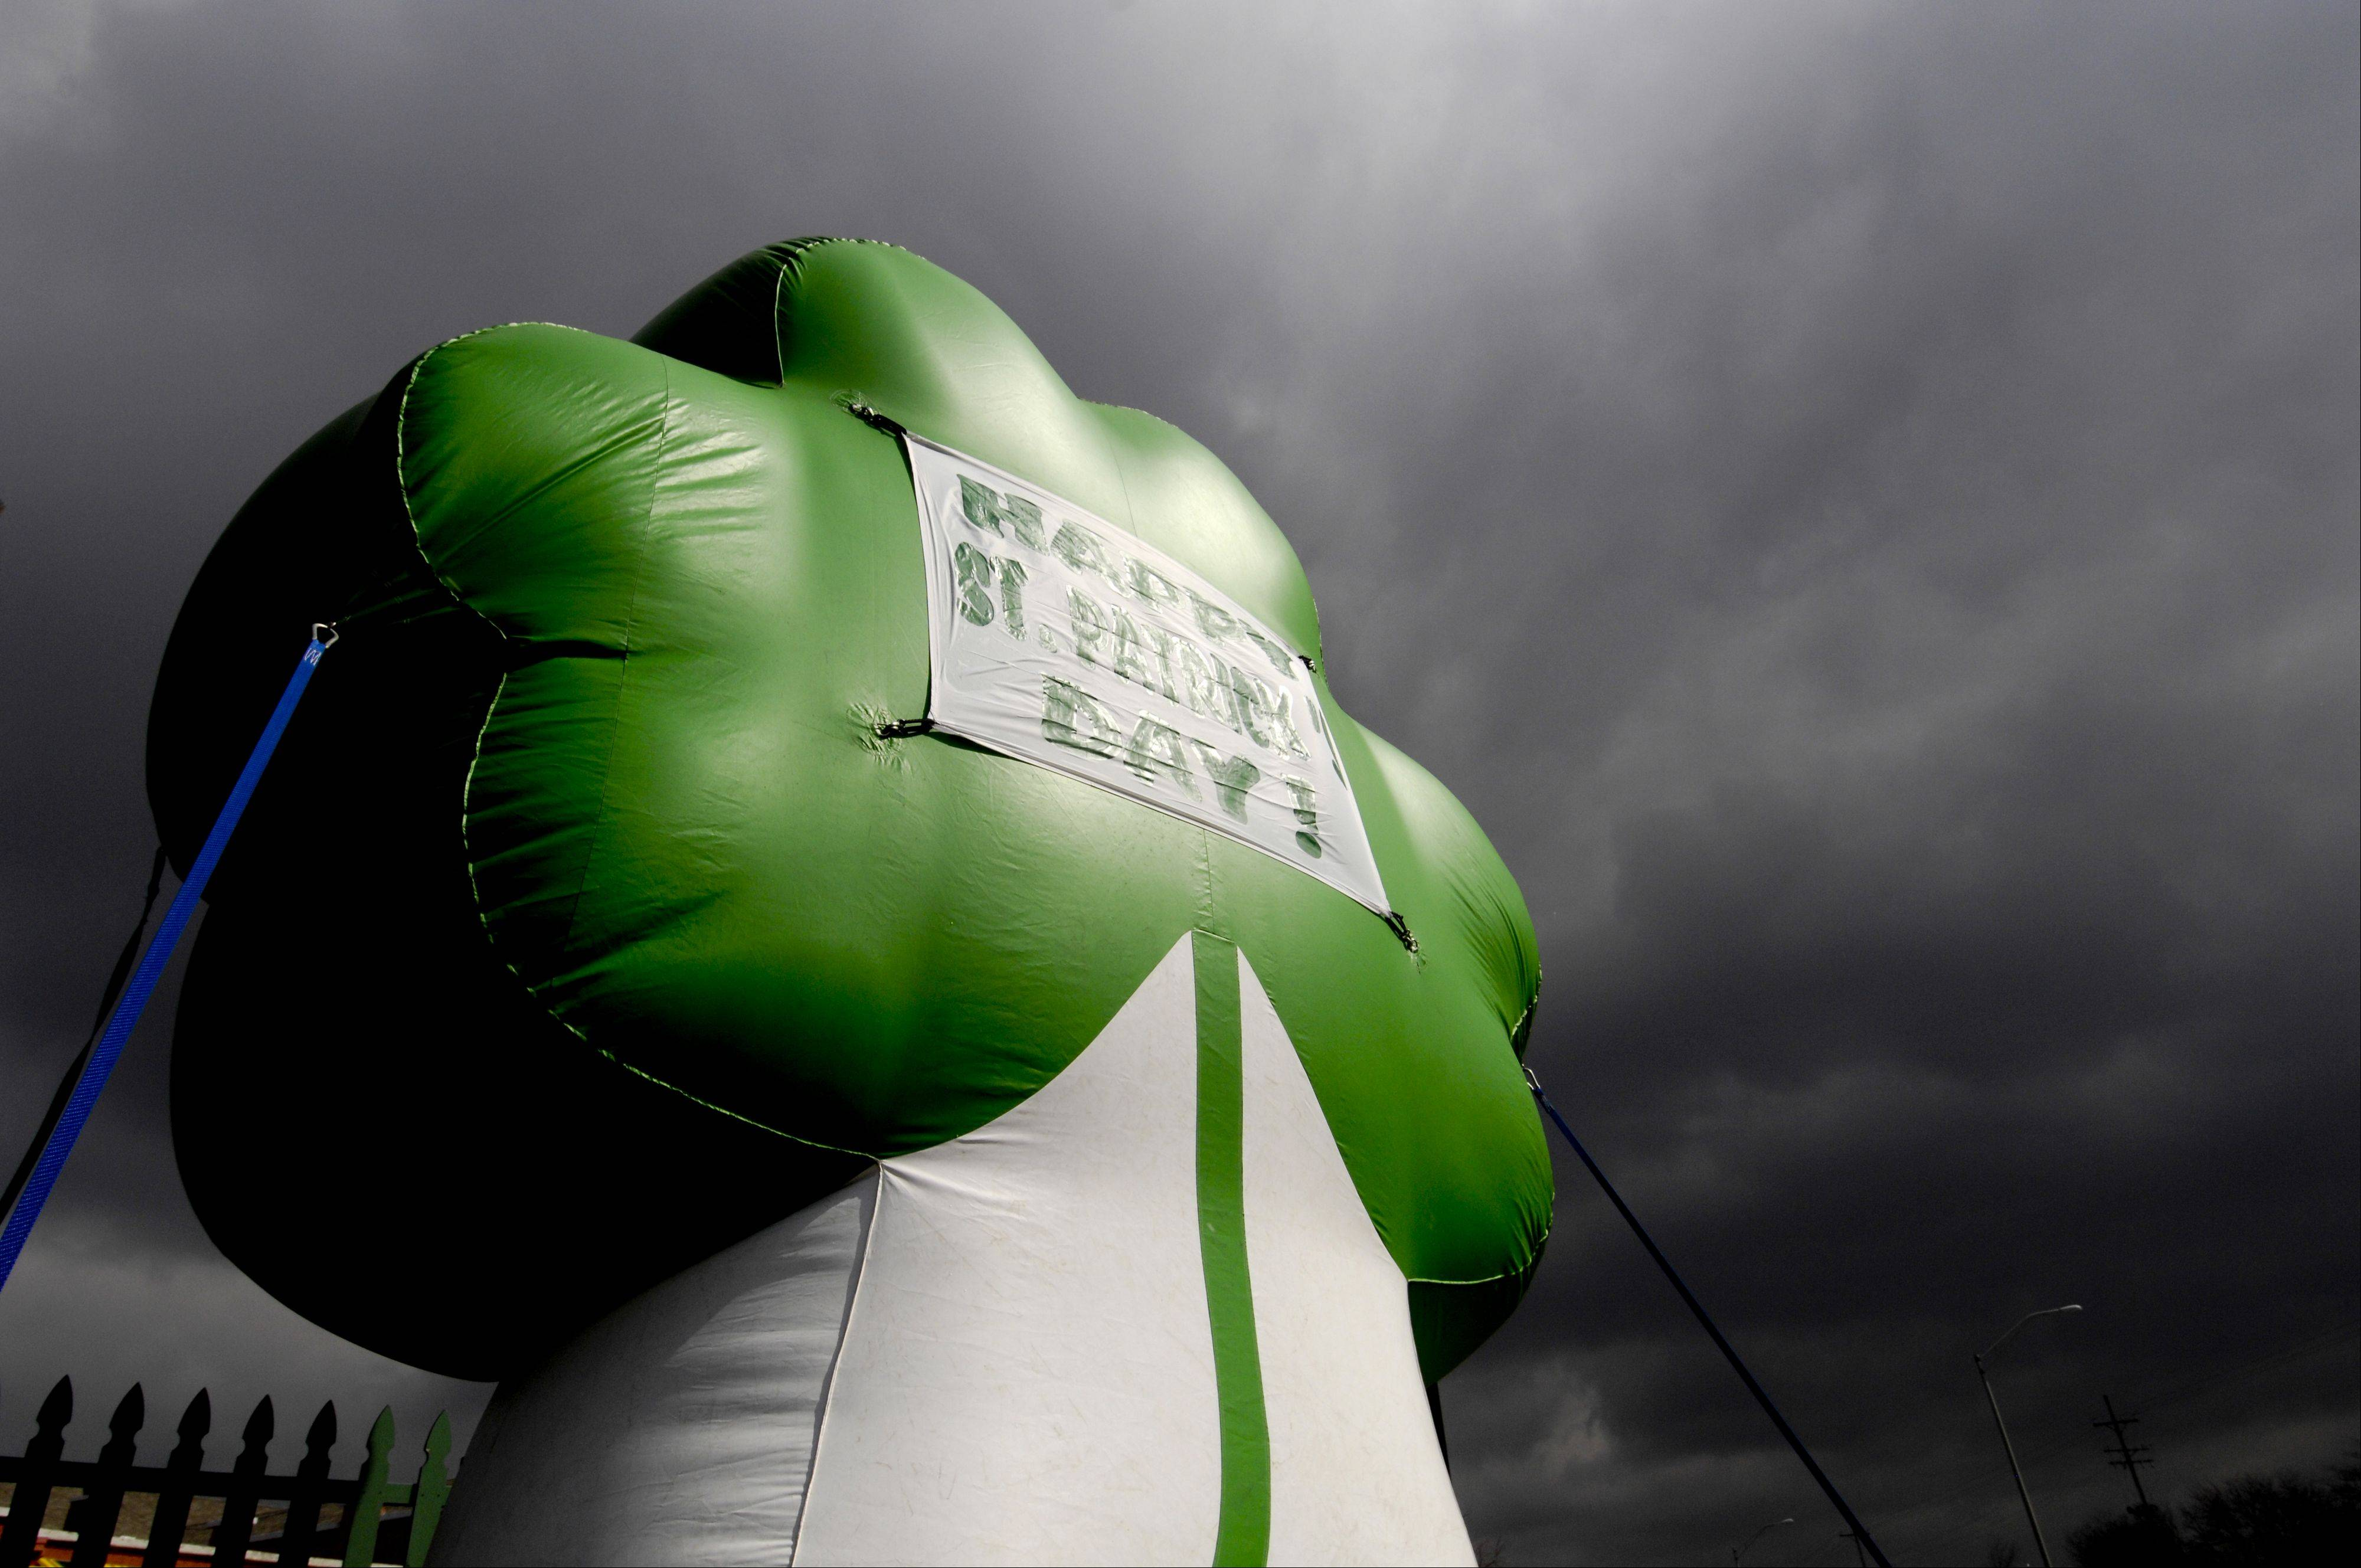 A large inflatable shamrock outside a Lisle bar combined with the ominous clouds and the bright late afternoon sun caught my eye. I used a wide angle lens and a low vantage point to frame the shamrock in the sky without having any buildings in the background.